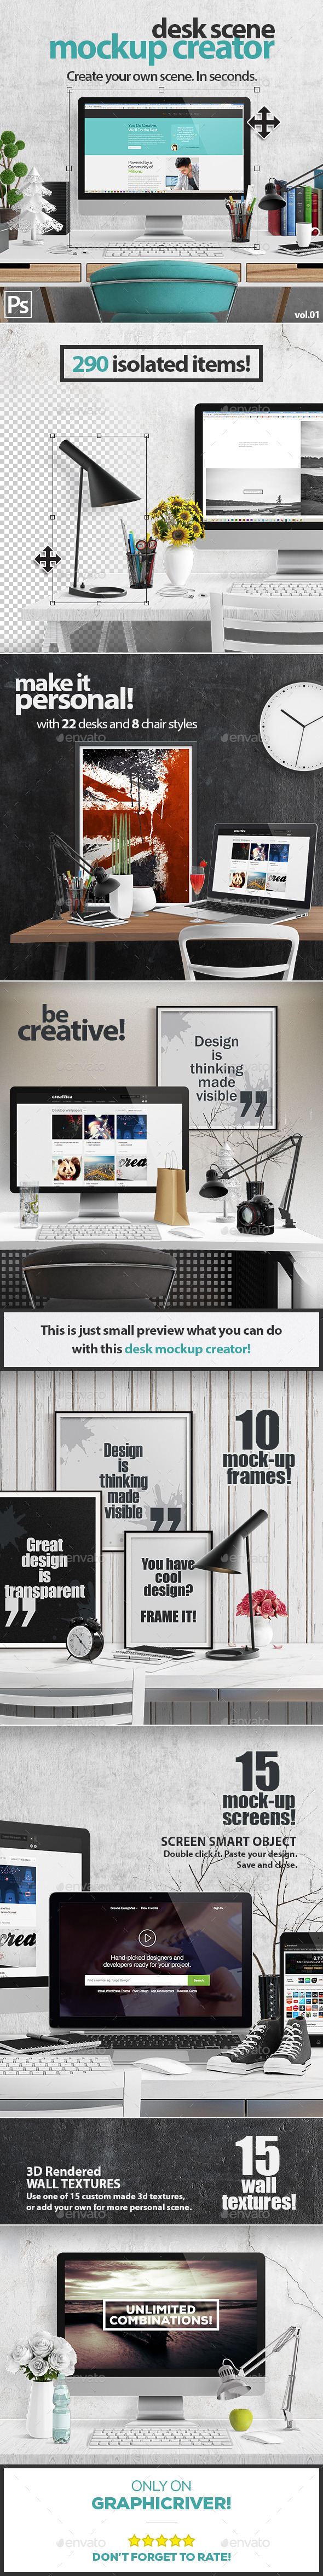 Desk Scene Mock-Up Creator